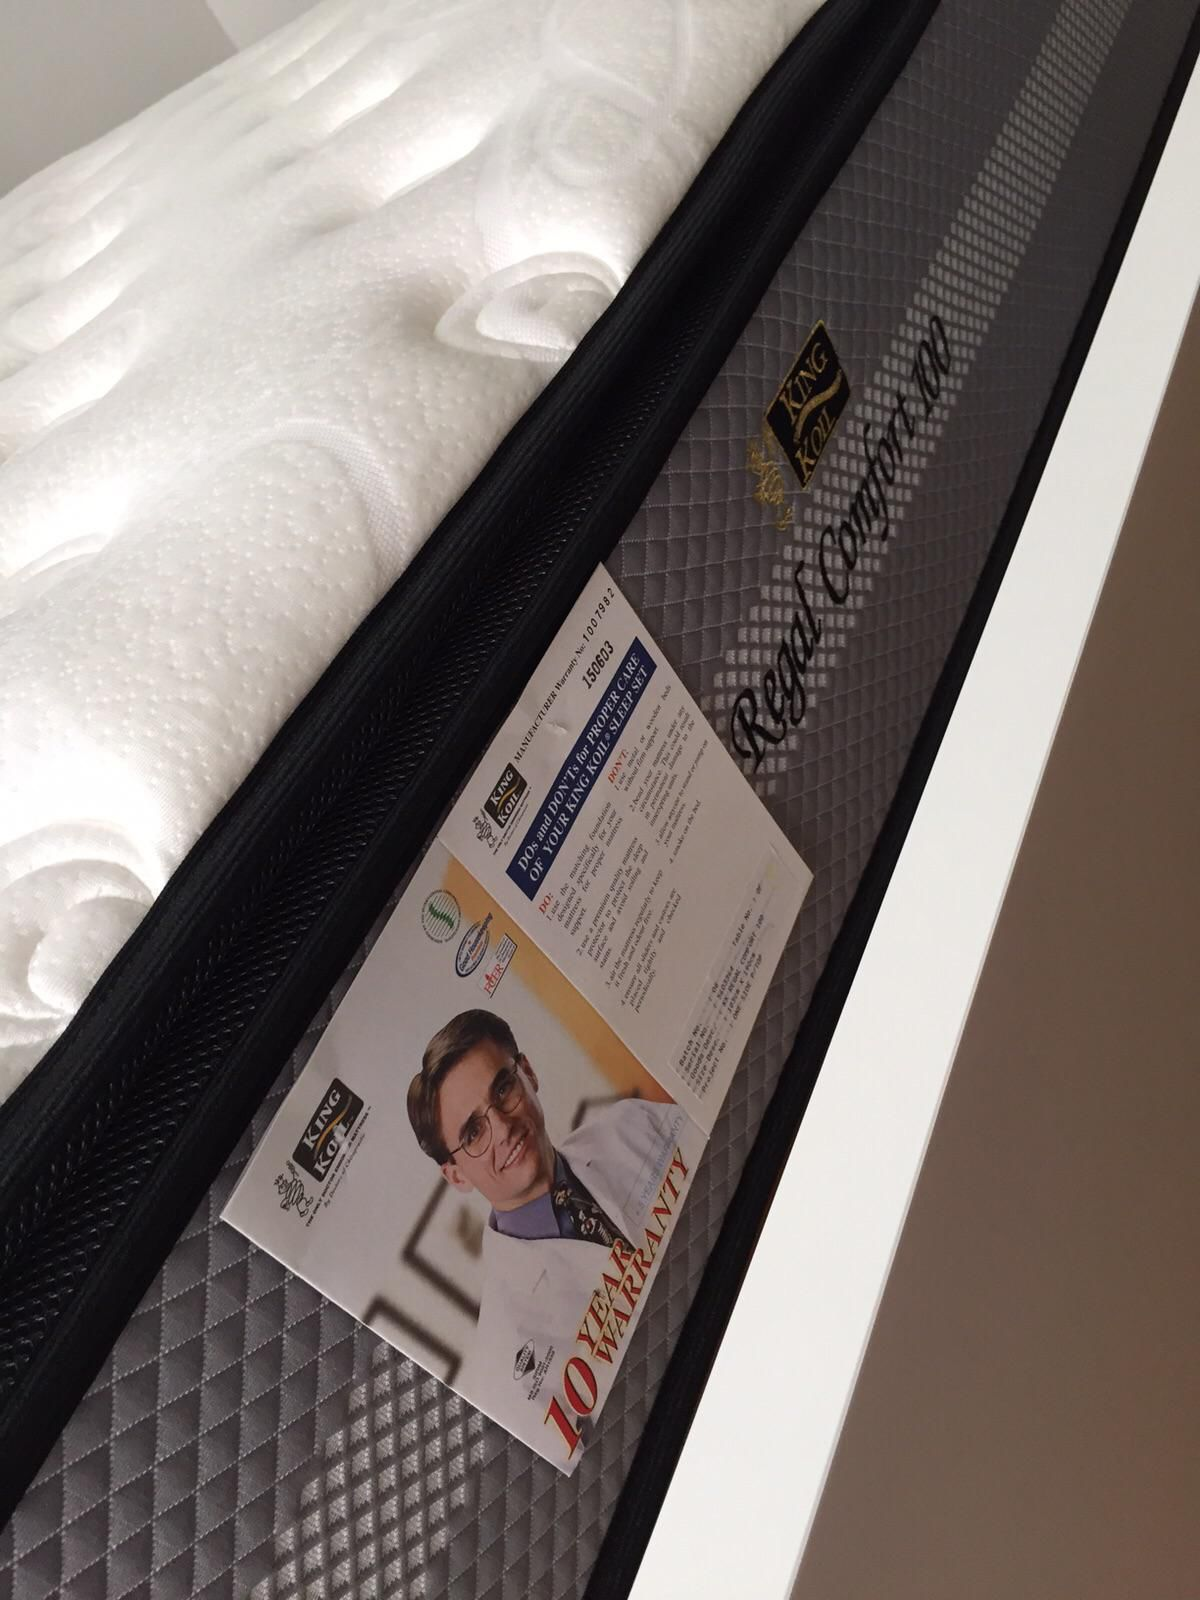 Ikea Bed Frame And King Koil Mattress For Sale Secondhand My